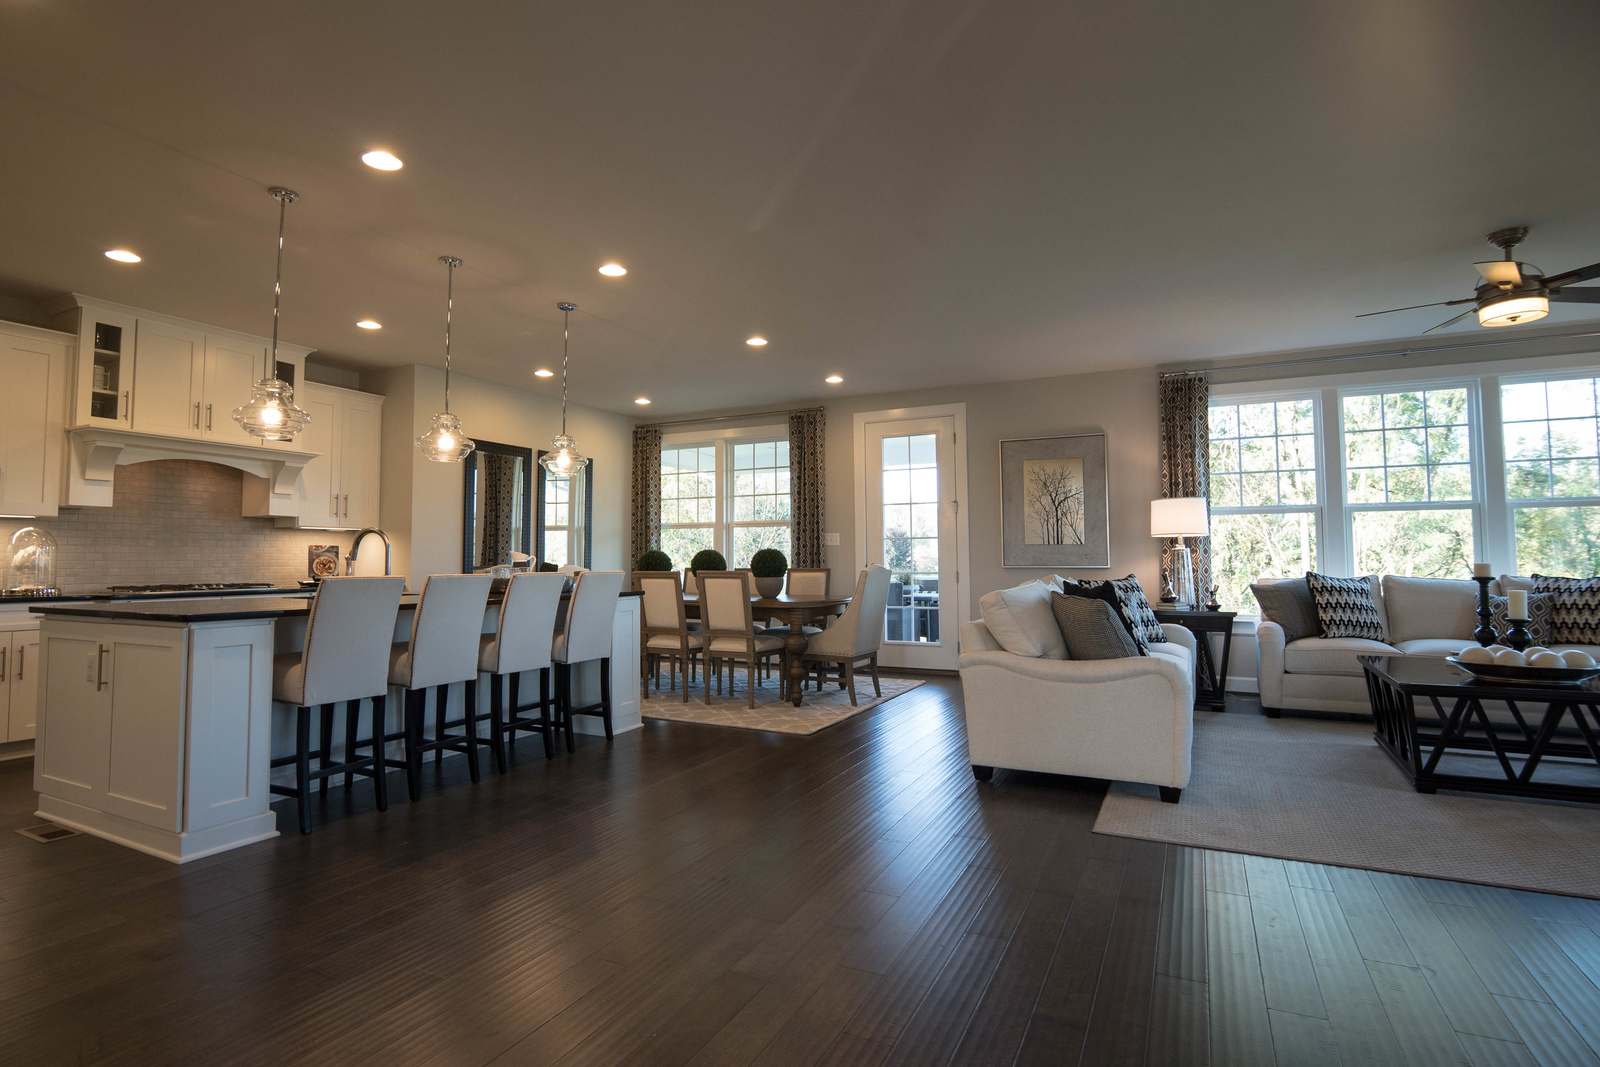 All homes at Chalfont View offer a gourmet kitchen with oversized granite island, 5'' hardwood flooring, plus convenient second-floor laundry. A main-level bedroom with full bath is also available.